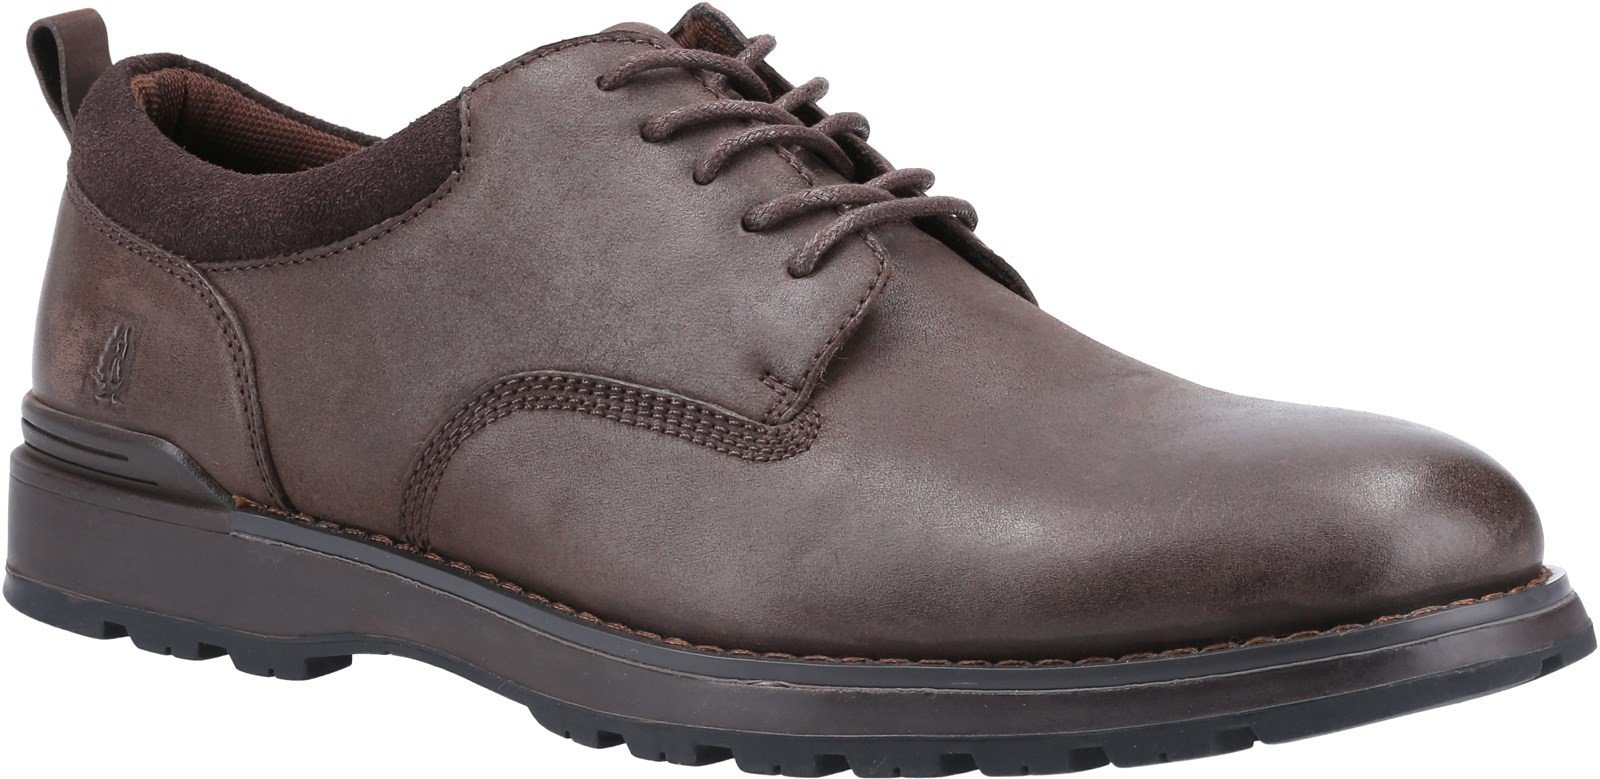 Hush Puppies Men's Dylan Lace Derby Shoes Various Colours 31996 - Brown 6